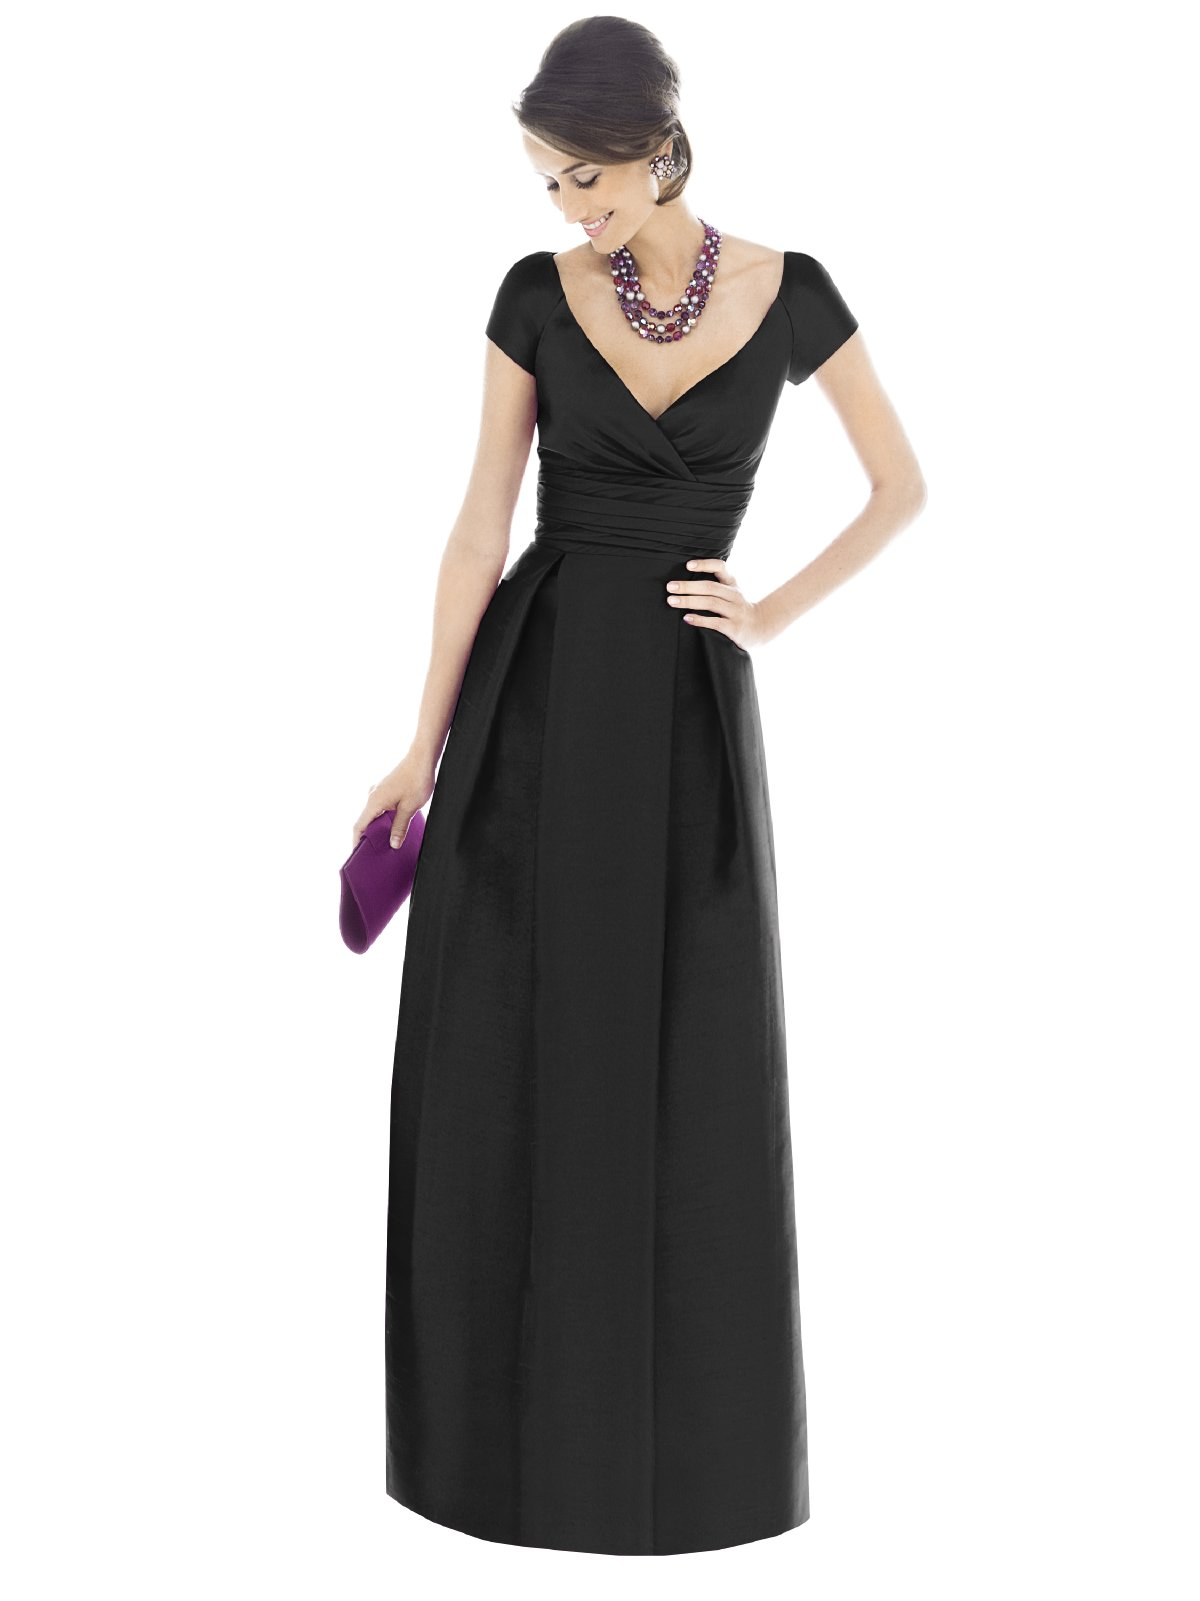 Alfred sung bridesmaid dresses designers alfred sung bridesmaid dresses alfred sung d 503 ombrellifo Choice Image